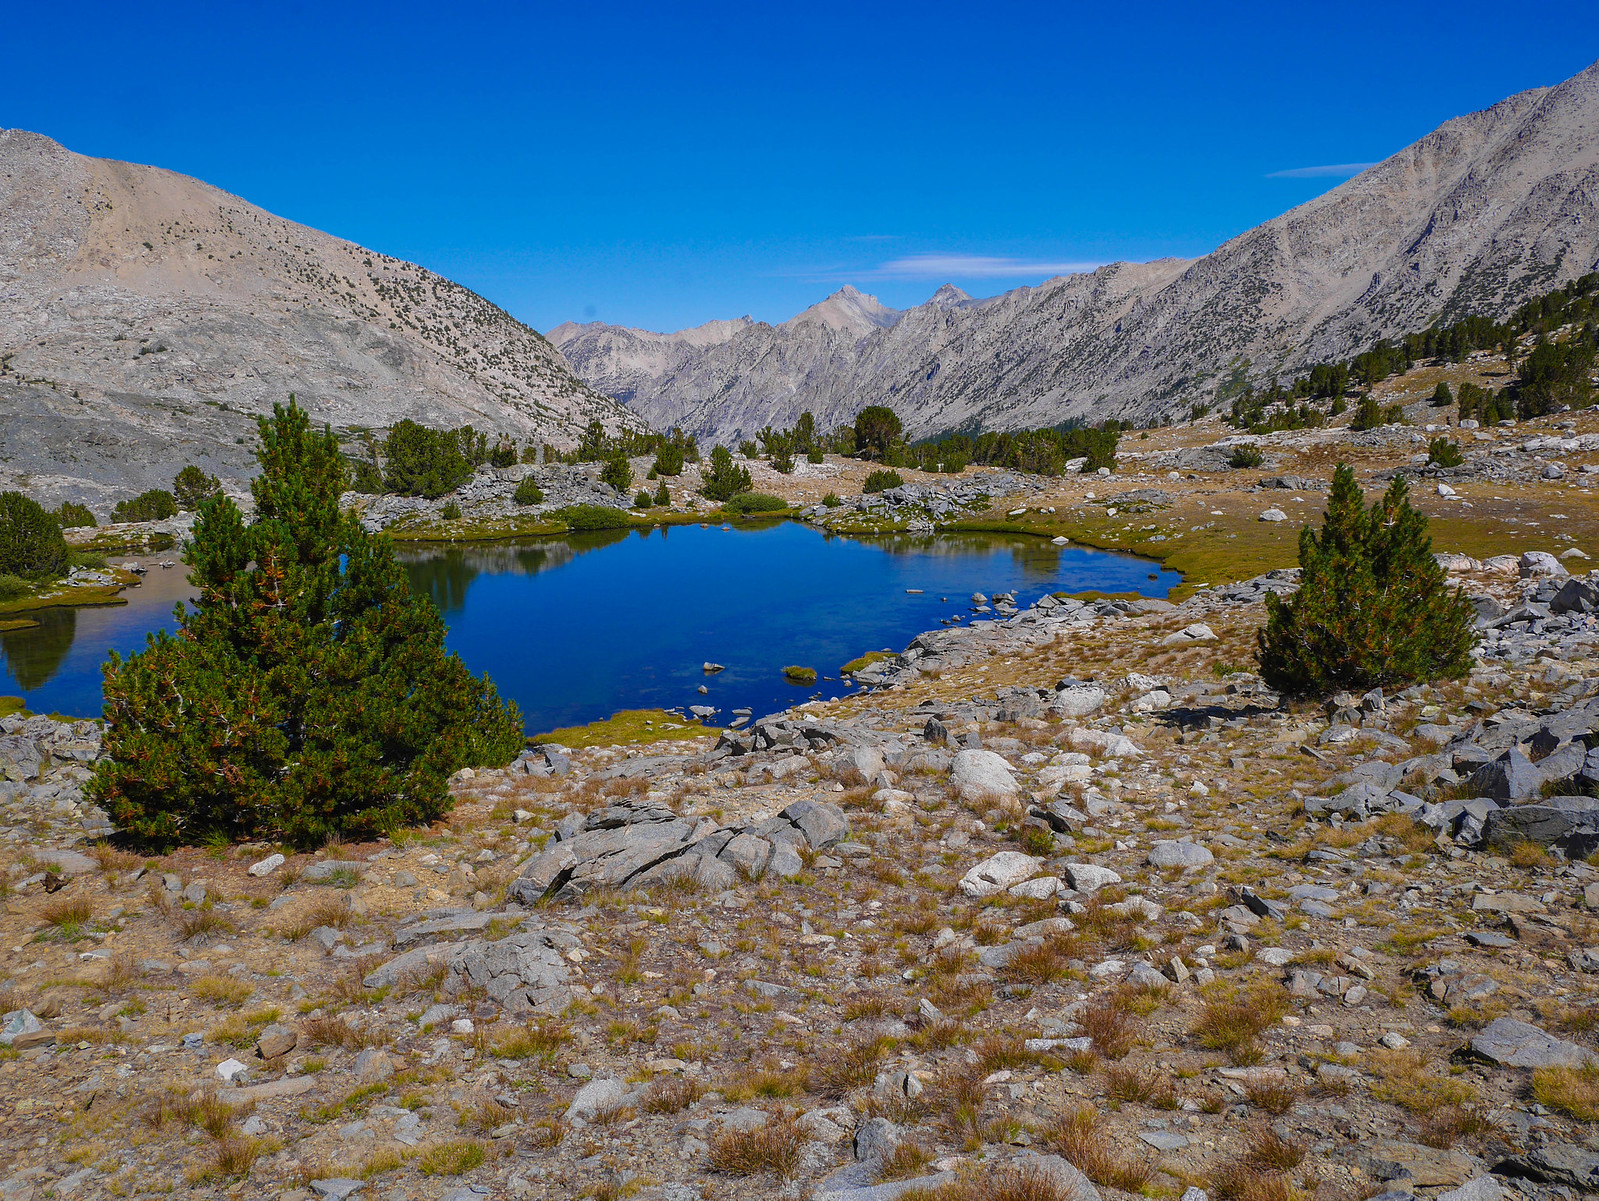 Tarn on the JMT below Forester